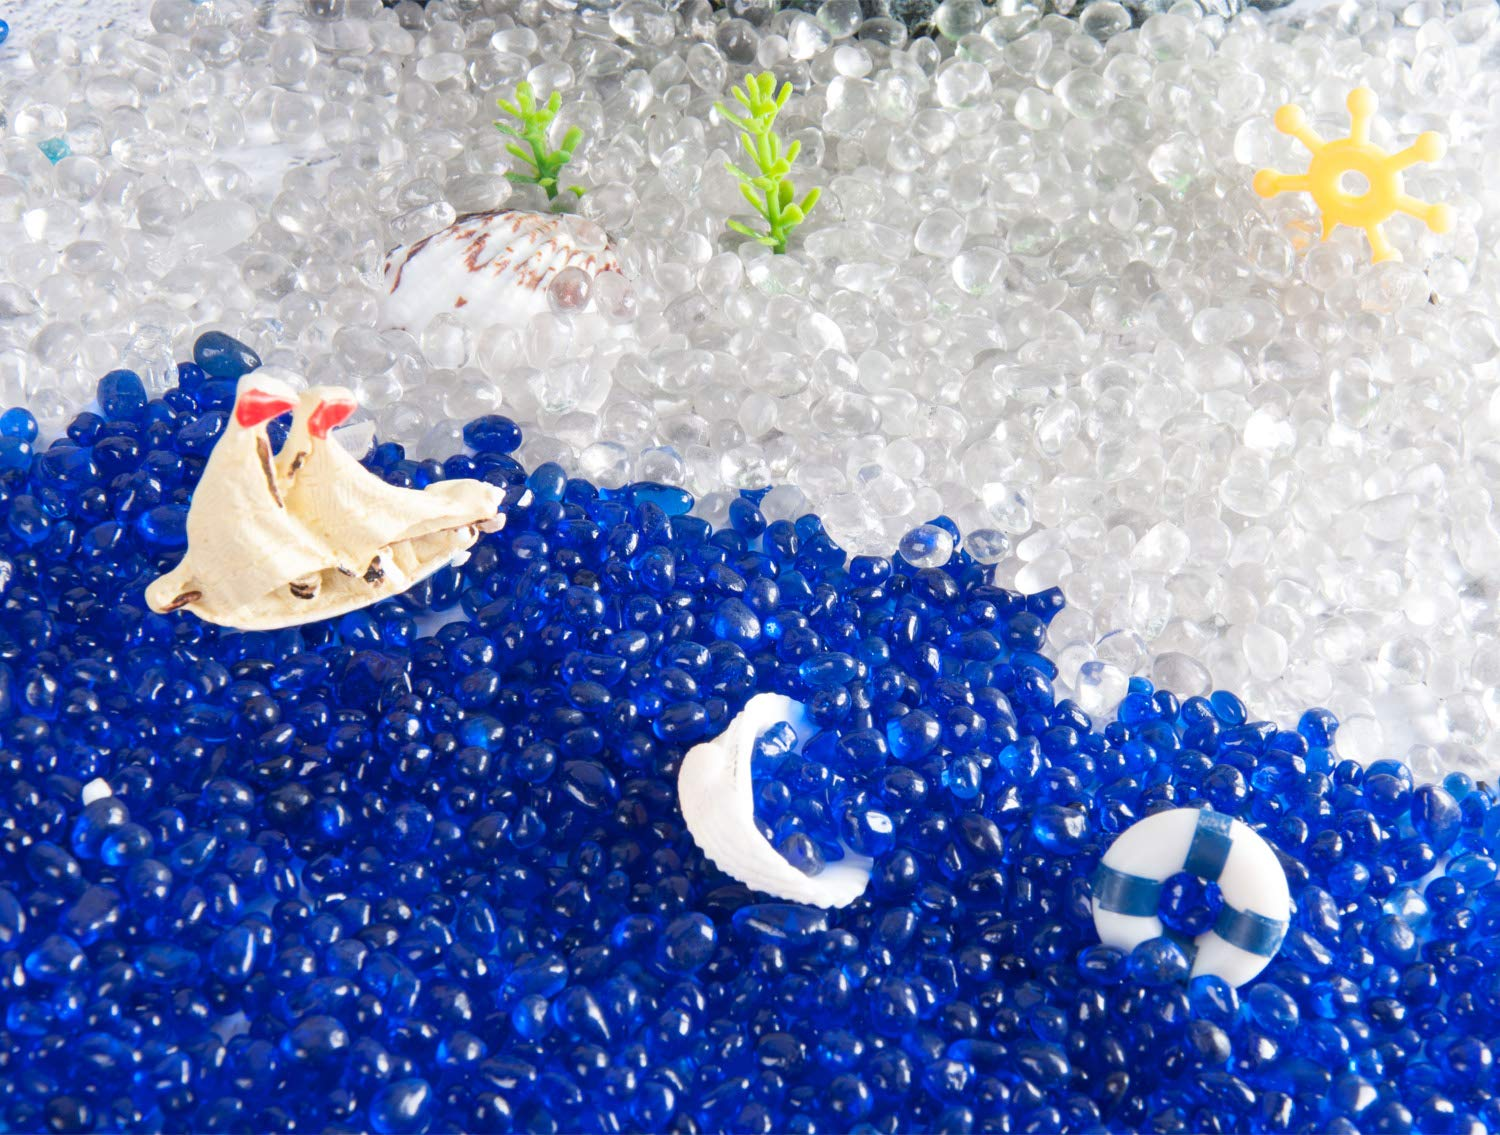 Crystal Rocks Party Table Scatter Joyclub Blue Flat Marbles Pebbles 1 lbs Landscaping Aquarium Decor Approx 100 pcs Wedding Decoration Glass Gems for Vase Fillers